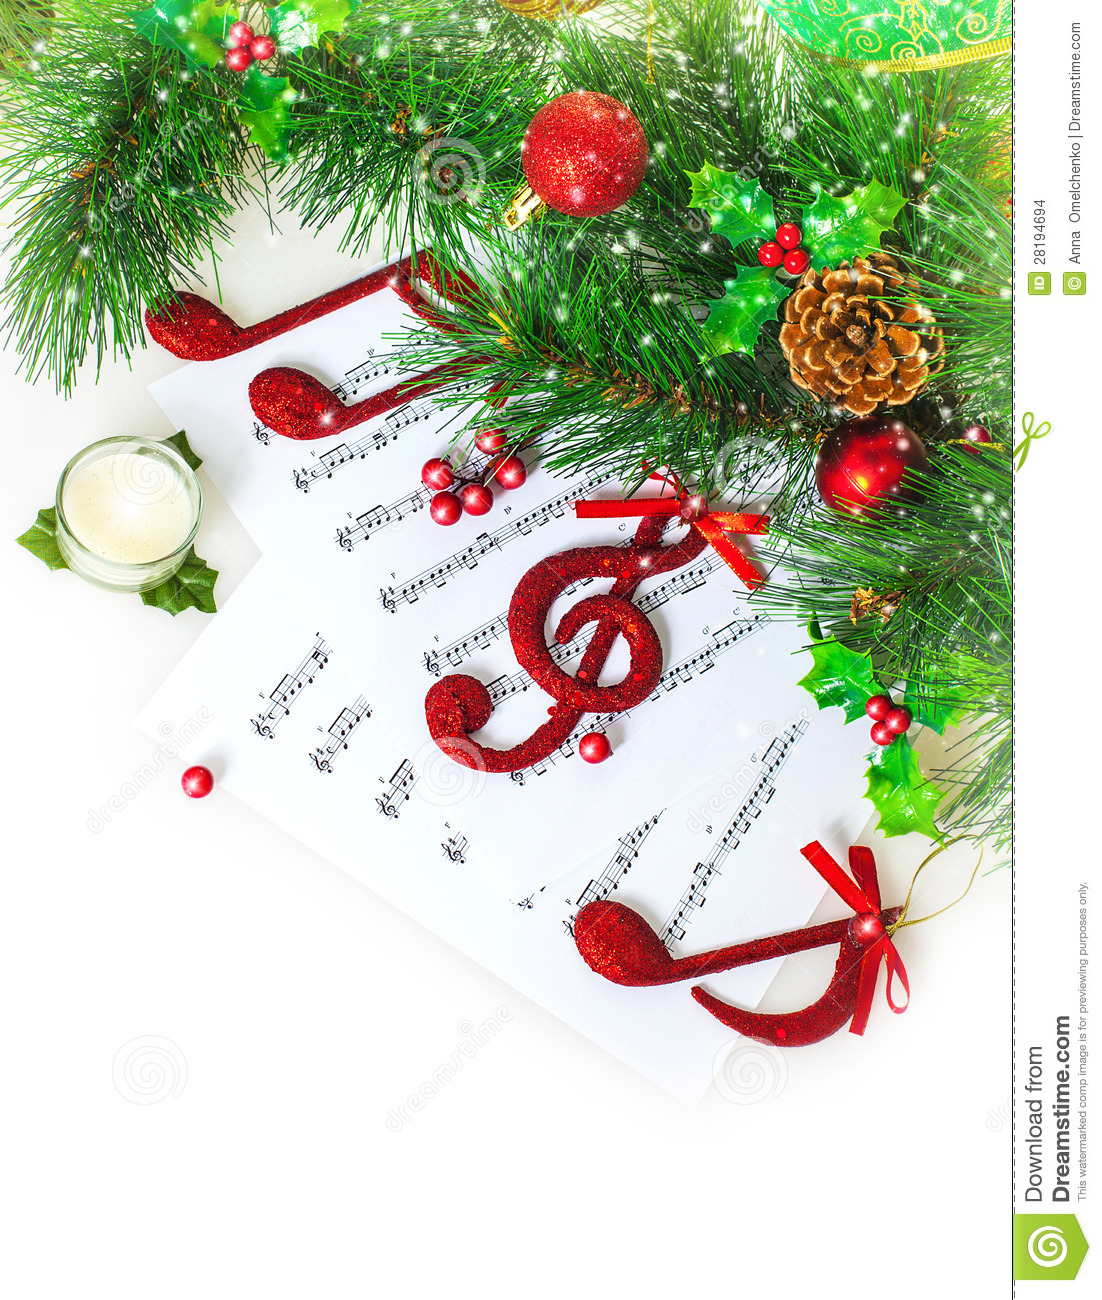 Christmas music note border images amp pictures becuo